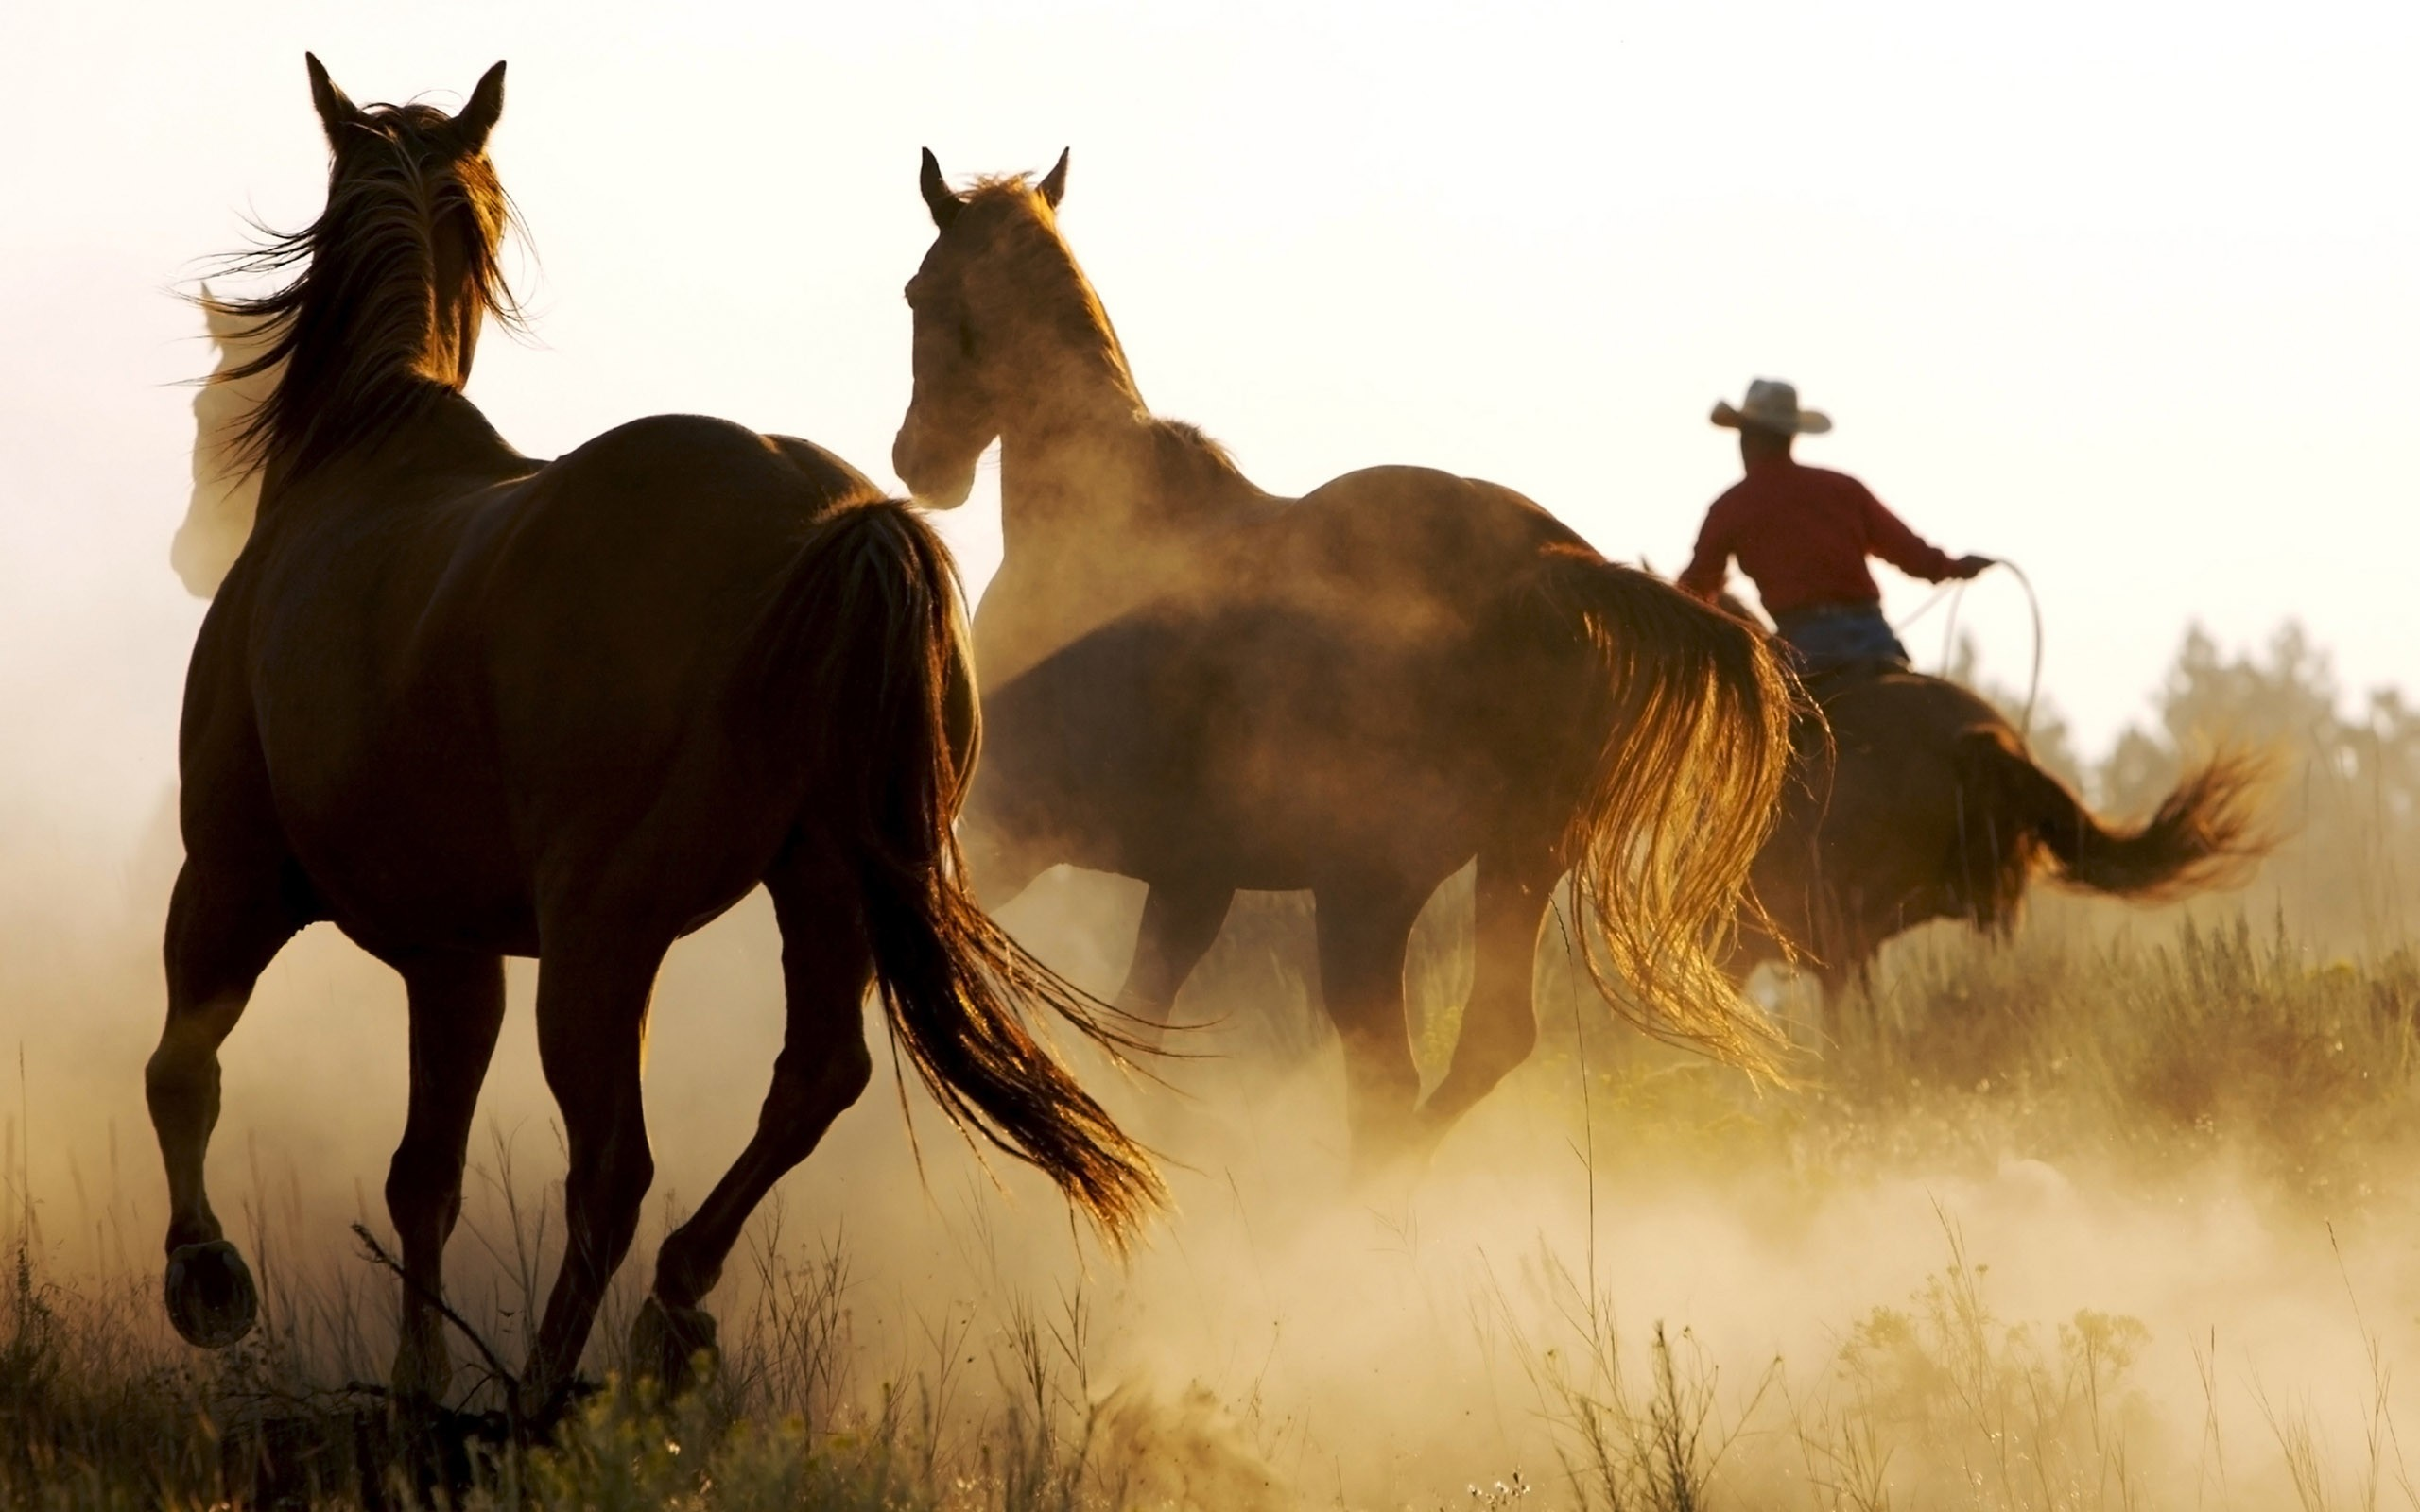 Horses and Cowboy wallpapers Wild Horses and Cowboy stock photos 2560x1600